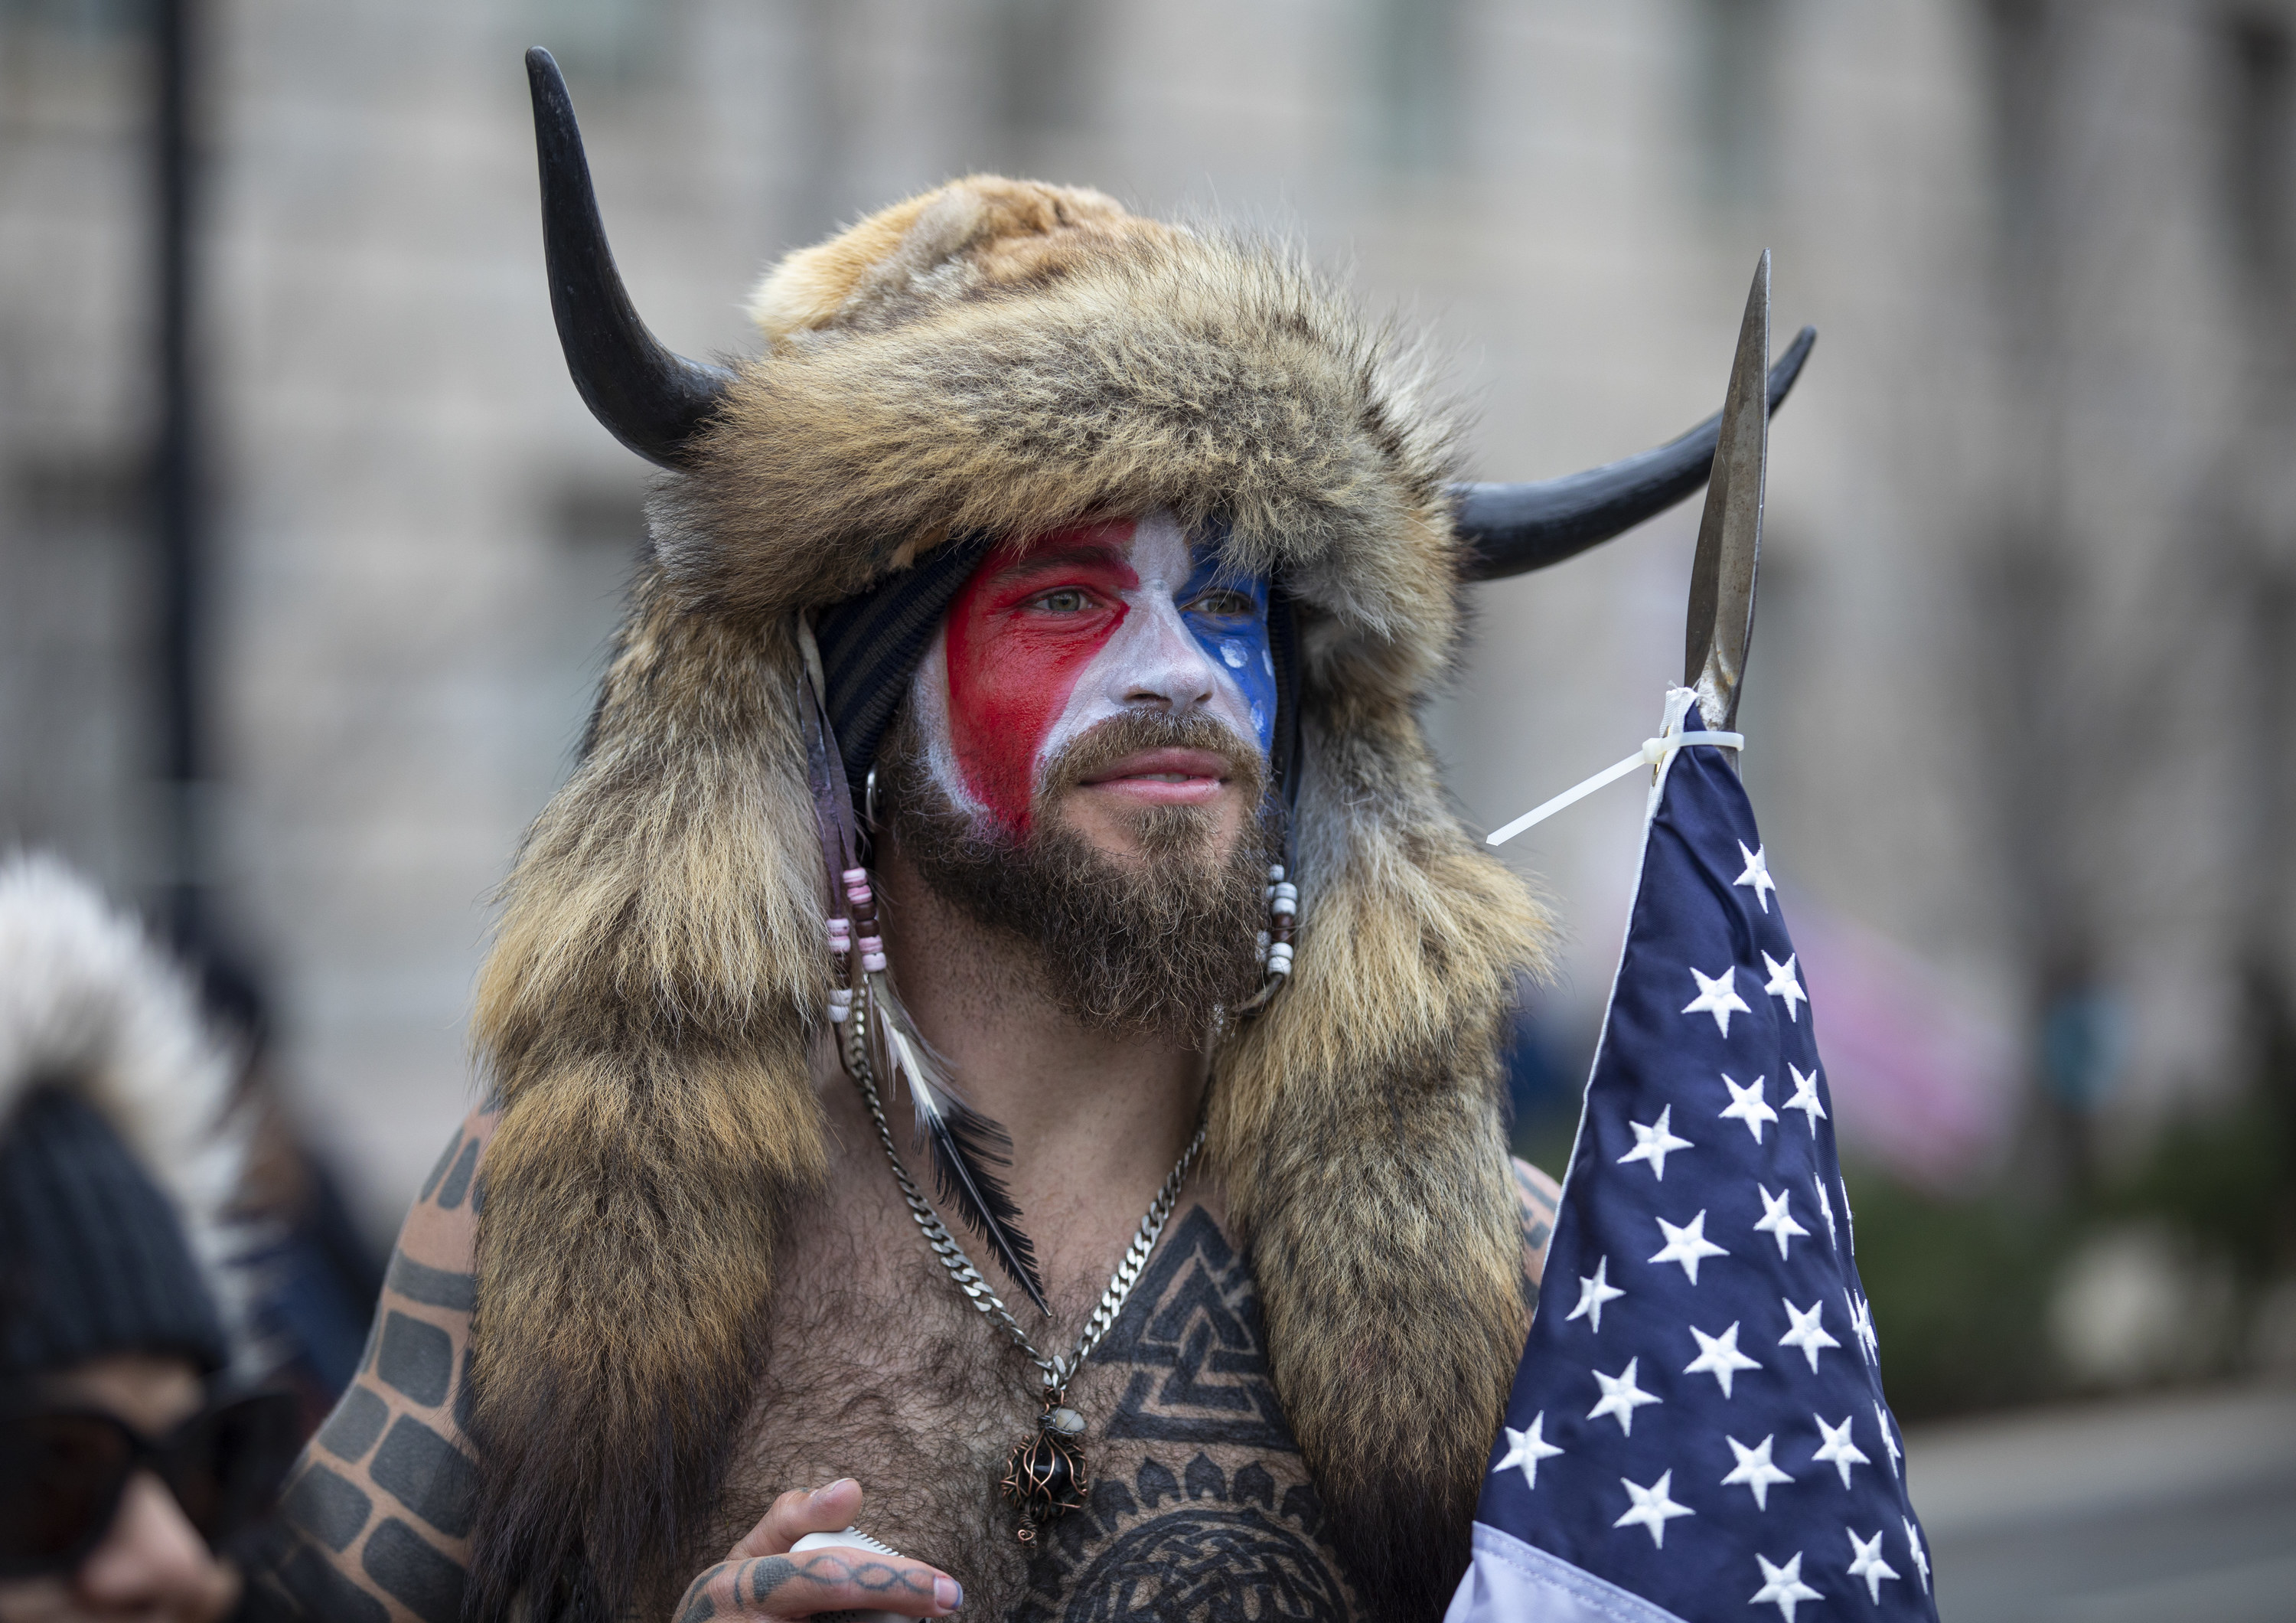 Chansley wearing a fur hat with horns and carrying an American flag with red, white, and blue face paint on